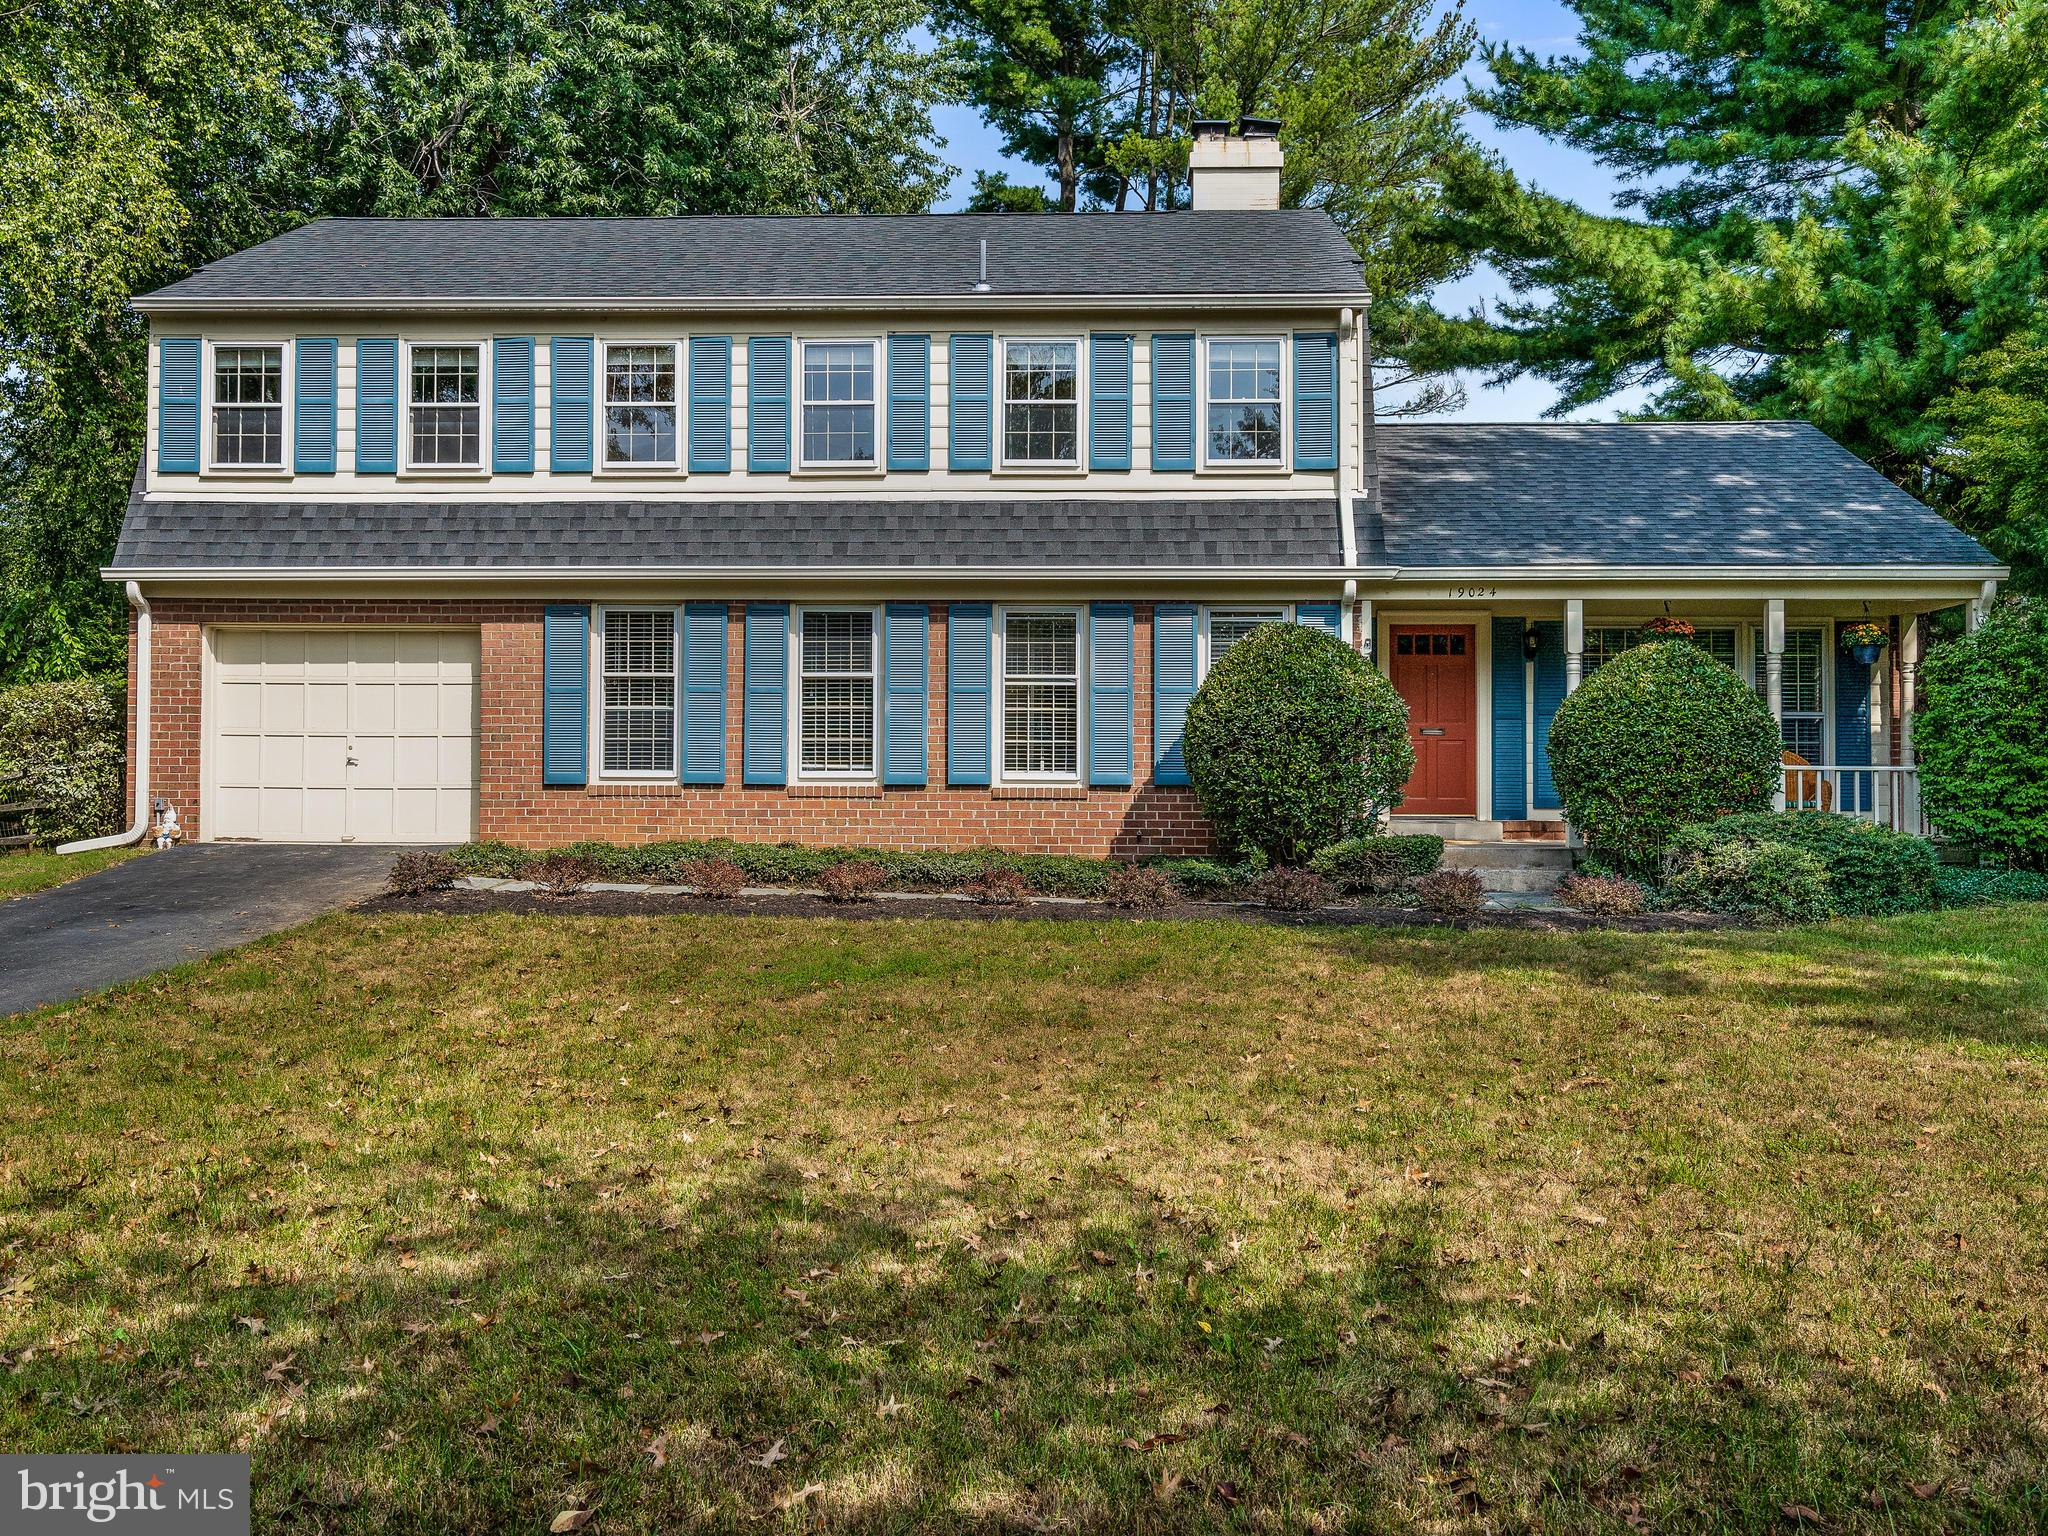 19024 OXCART PLACE, GAITHERSBURG, MD 20879